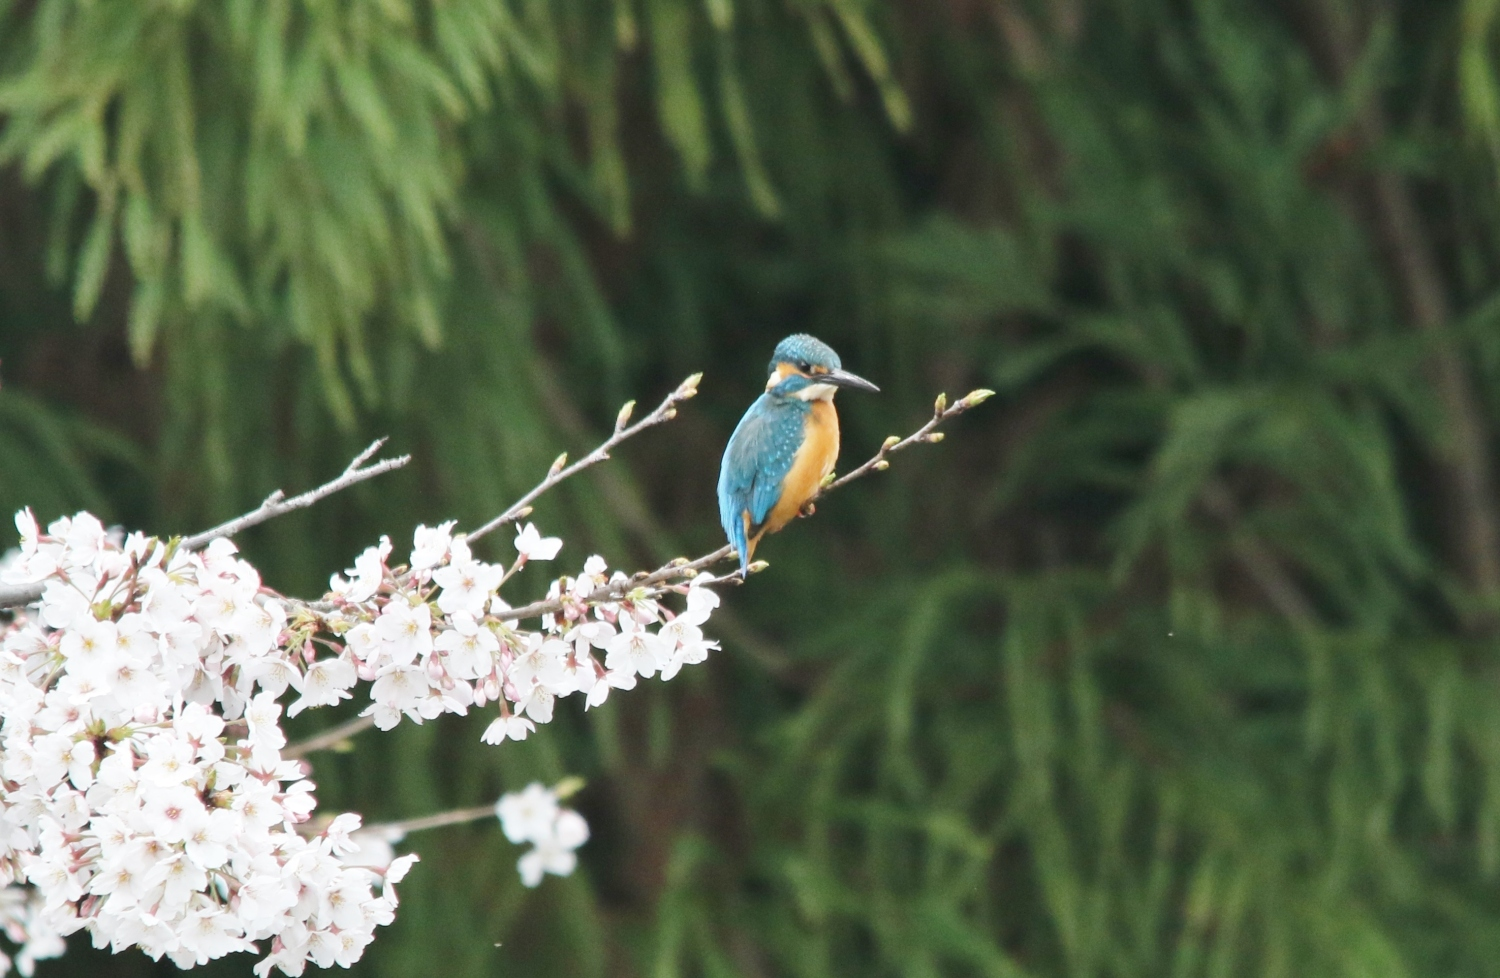 Cherry blossoms and kingfisher